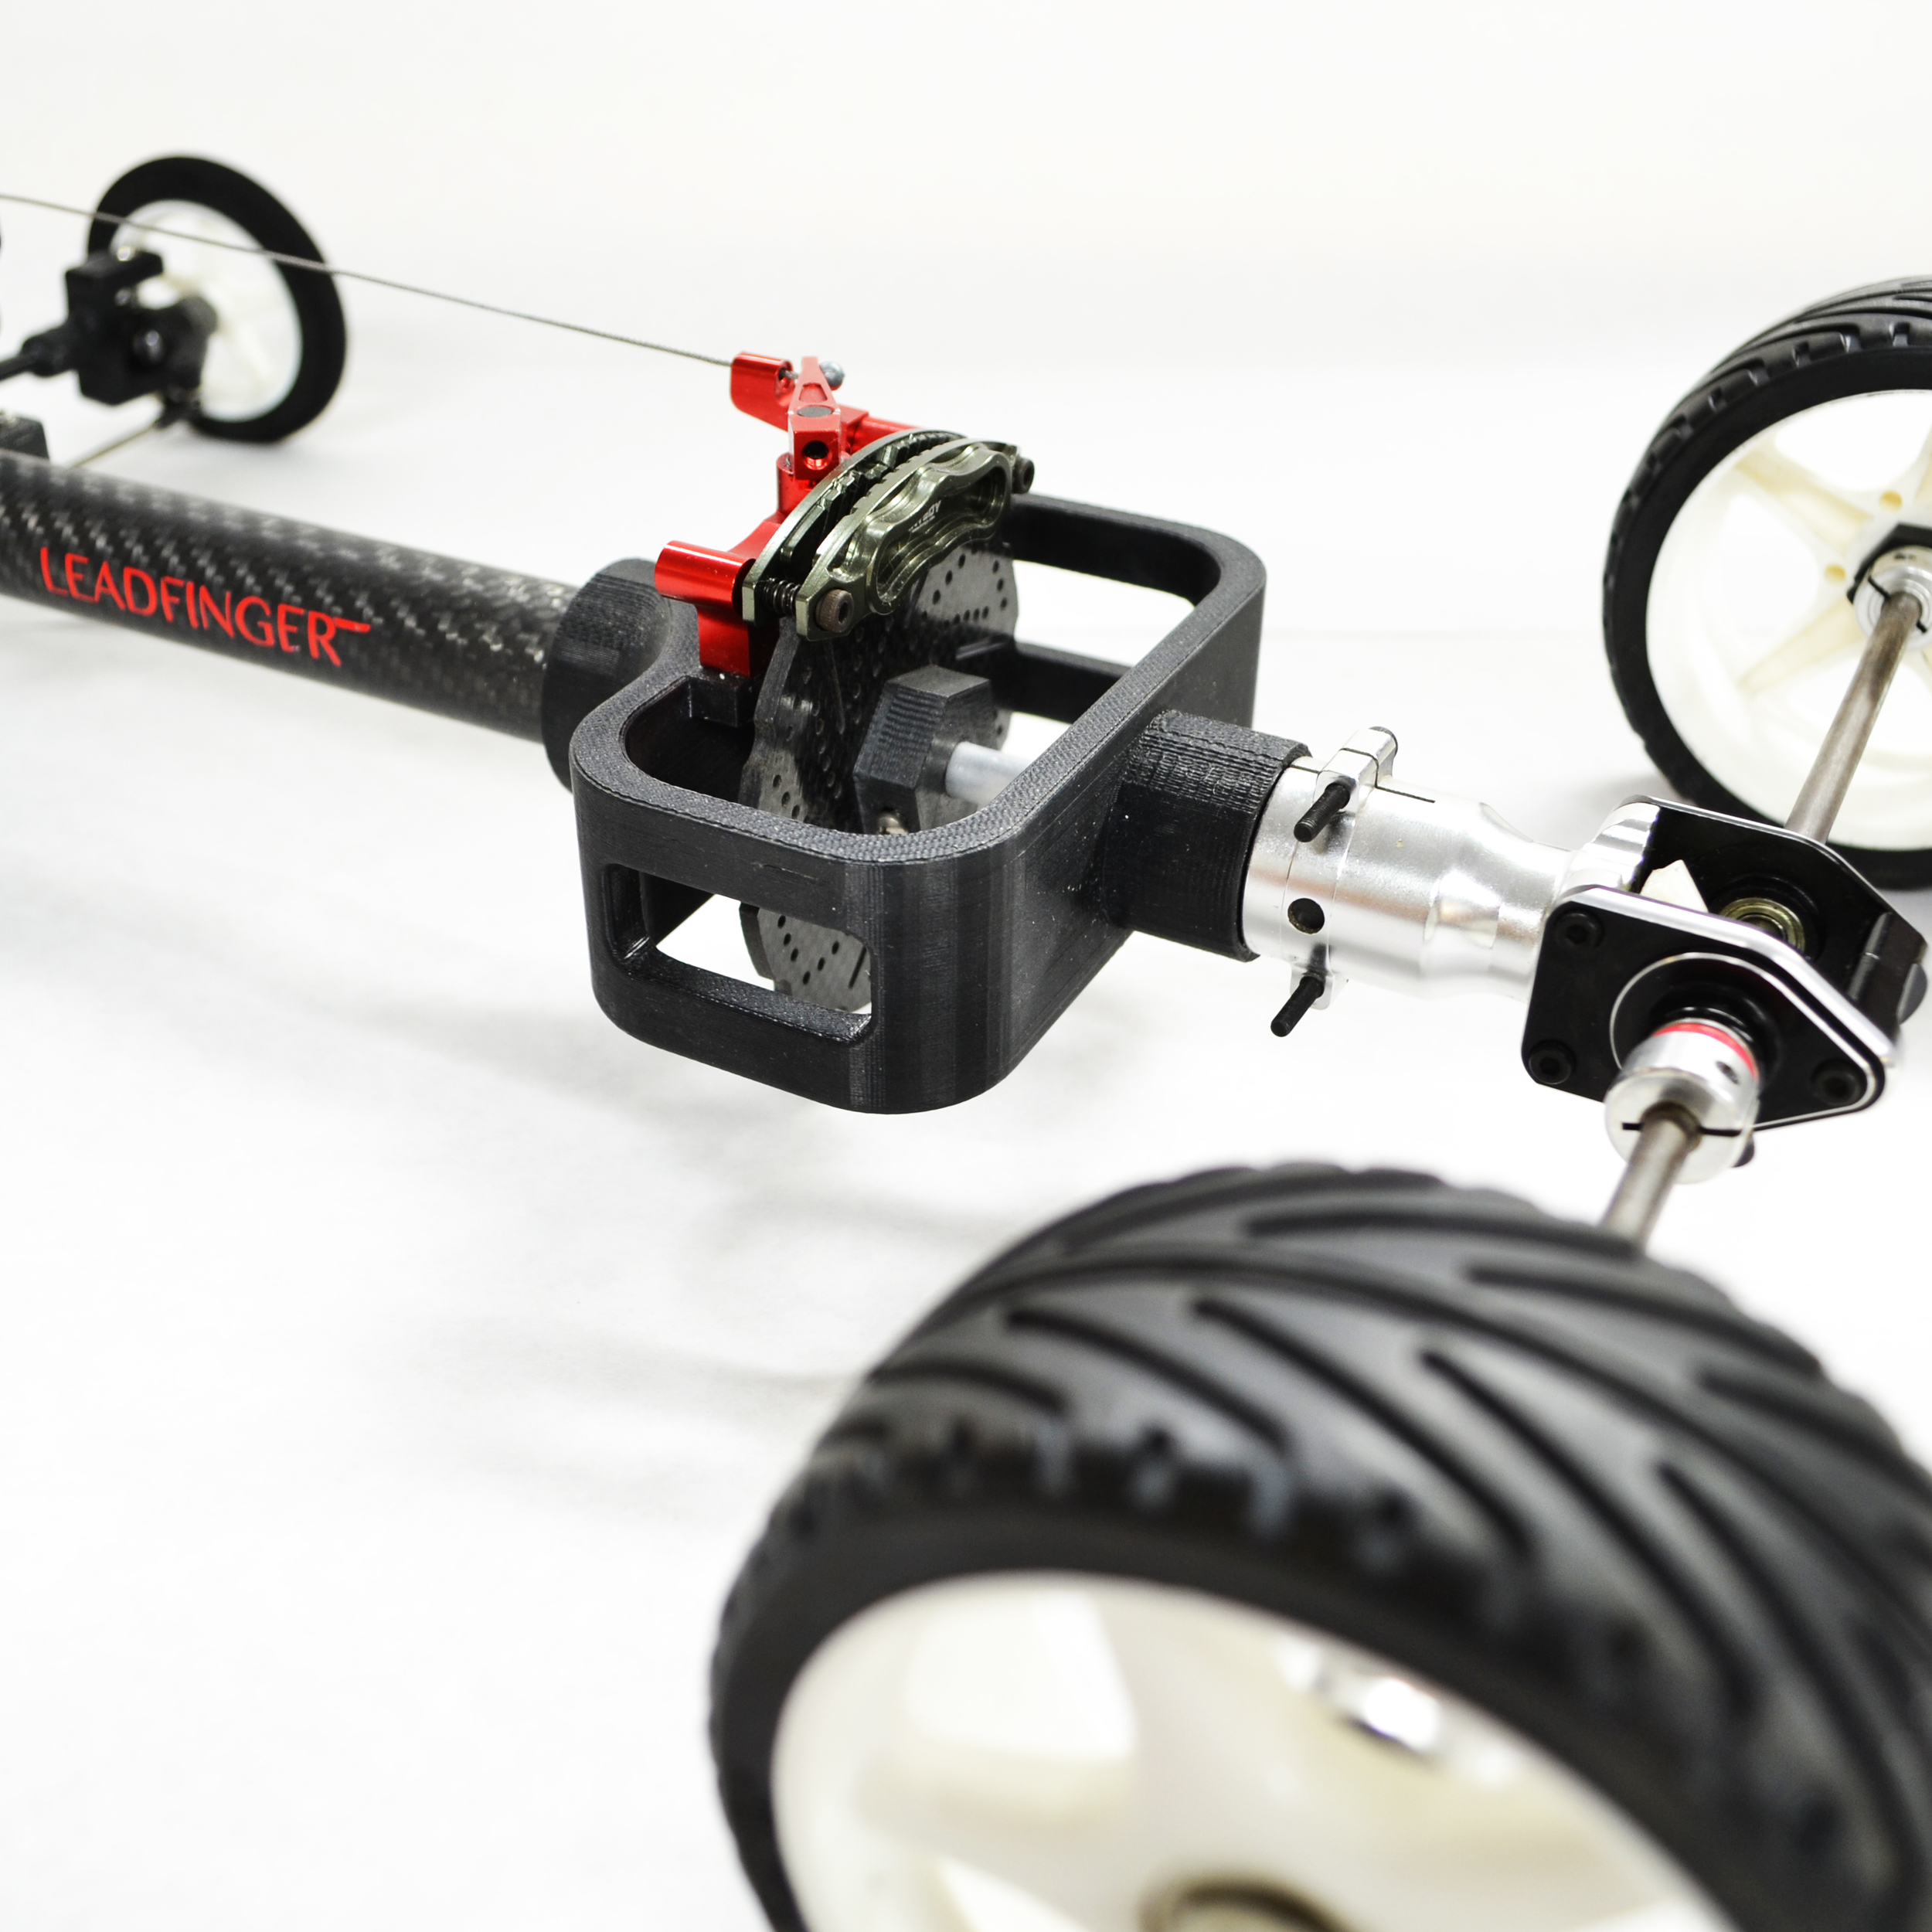 LEADFINGER RC Racing<a href=/leadfinger>→</a><strong>Rubber band power.</strong>